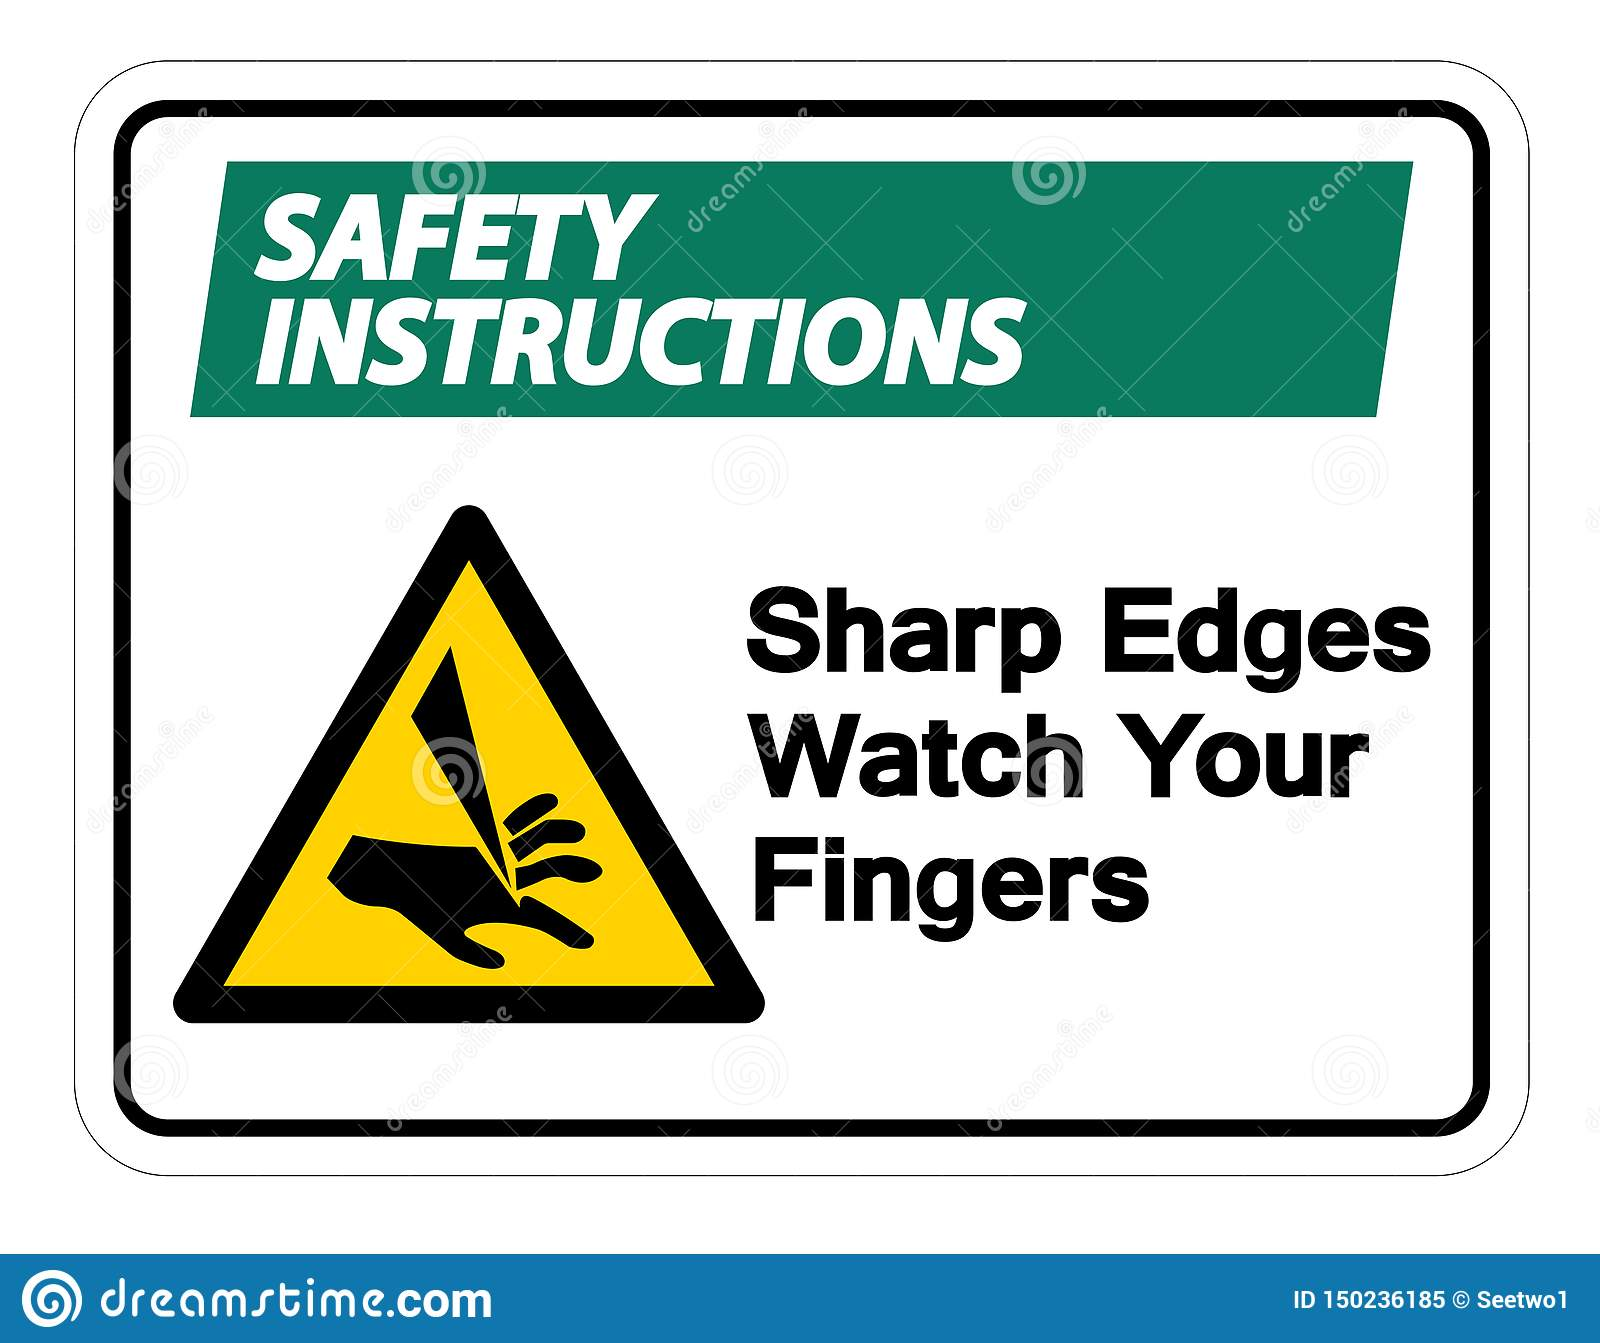 Safety instructions Sharp Edges Watch Your Fingers Symbol Sign Isolate On White Background,Vector Illustration